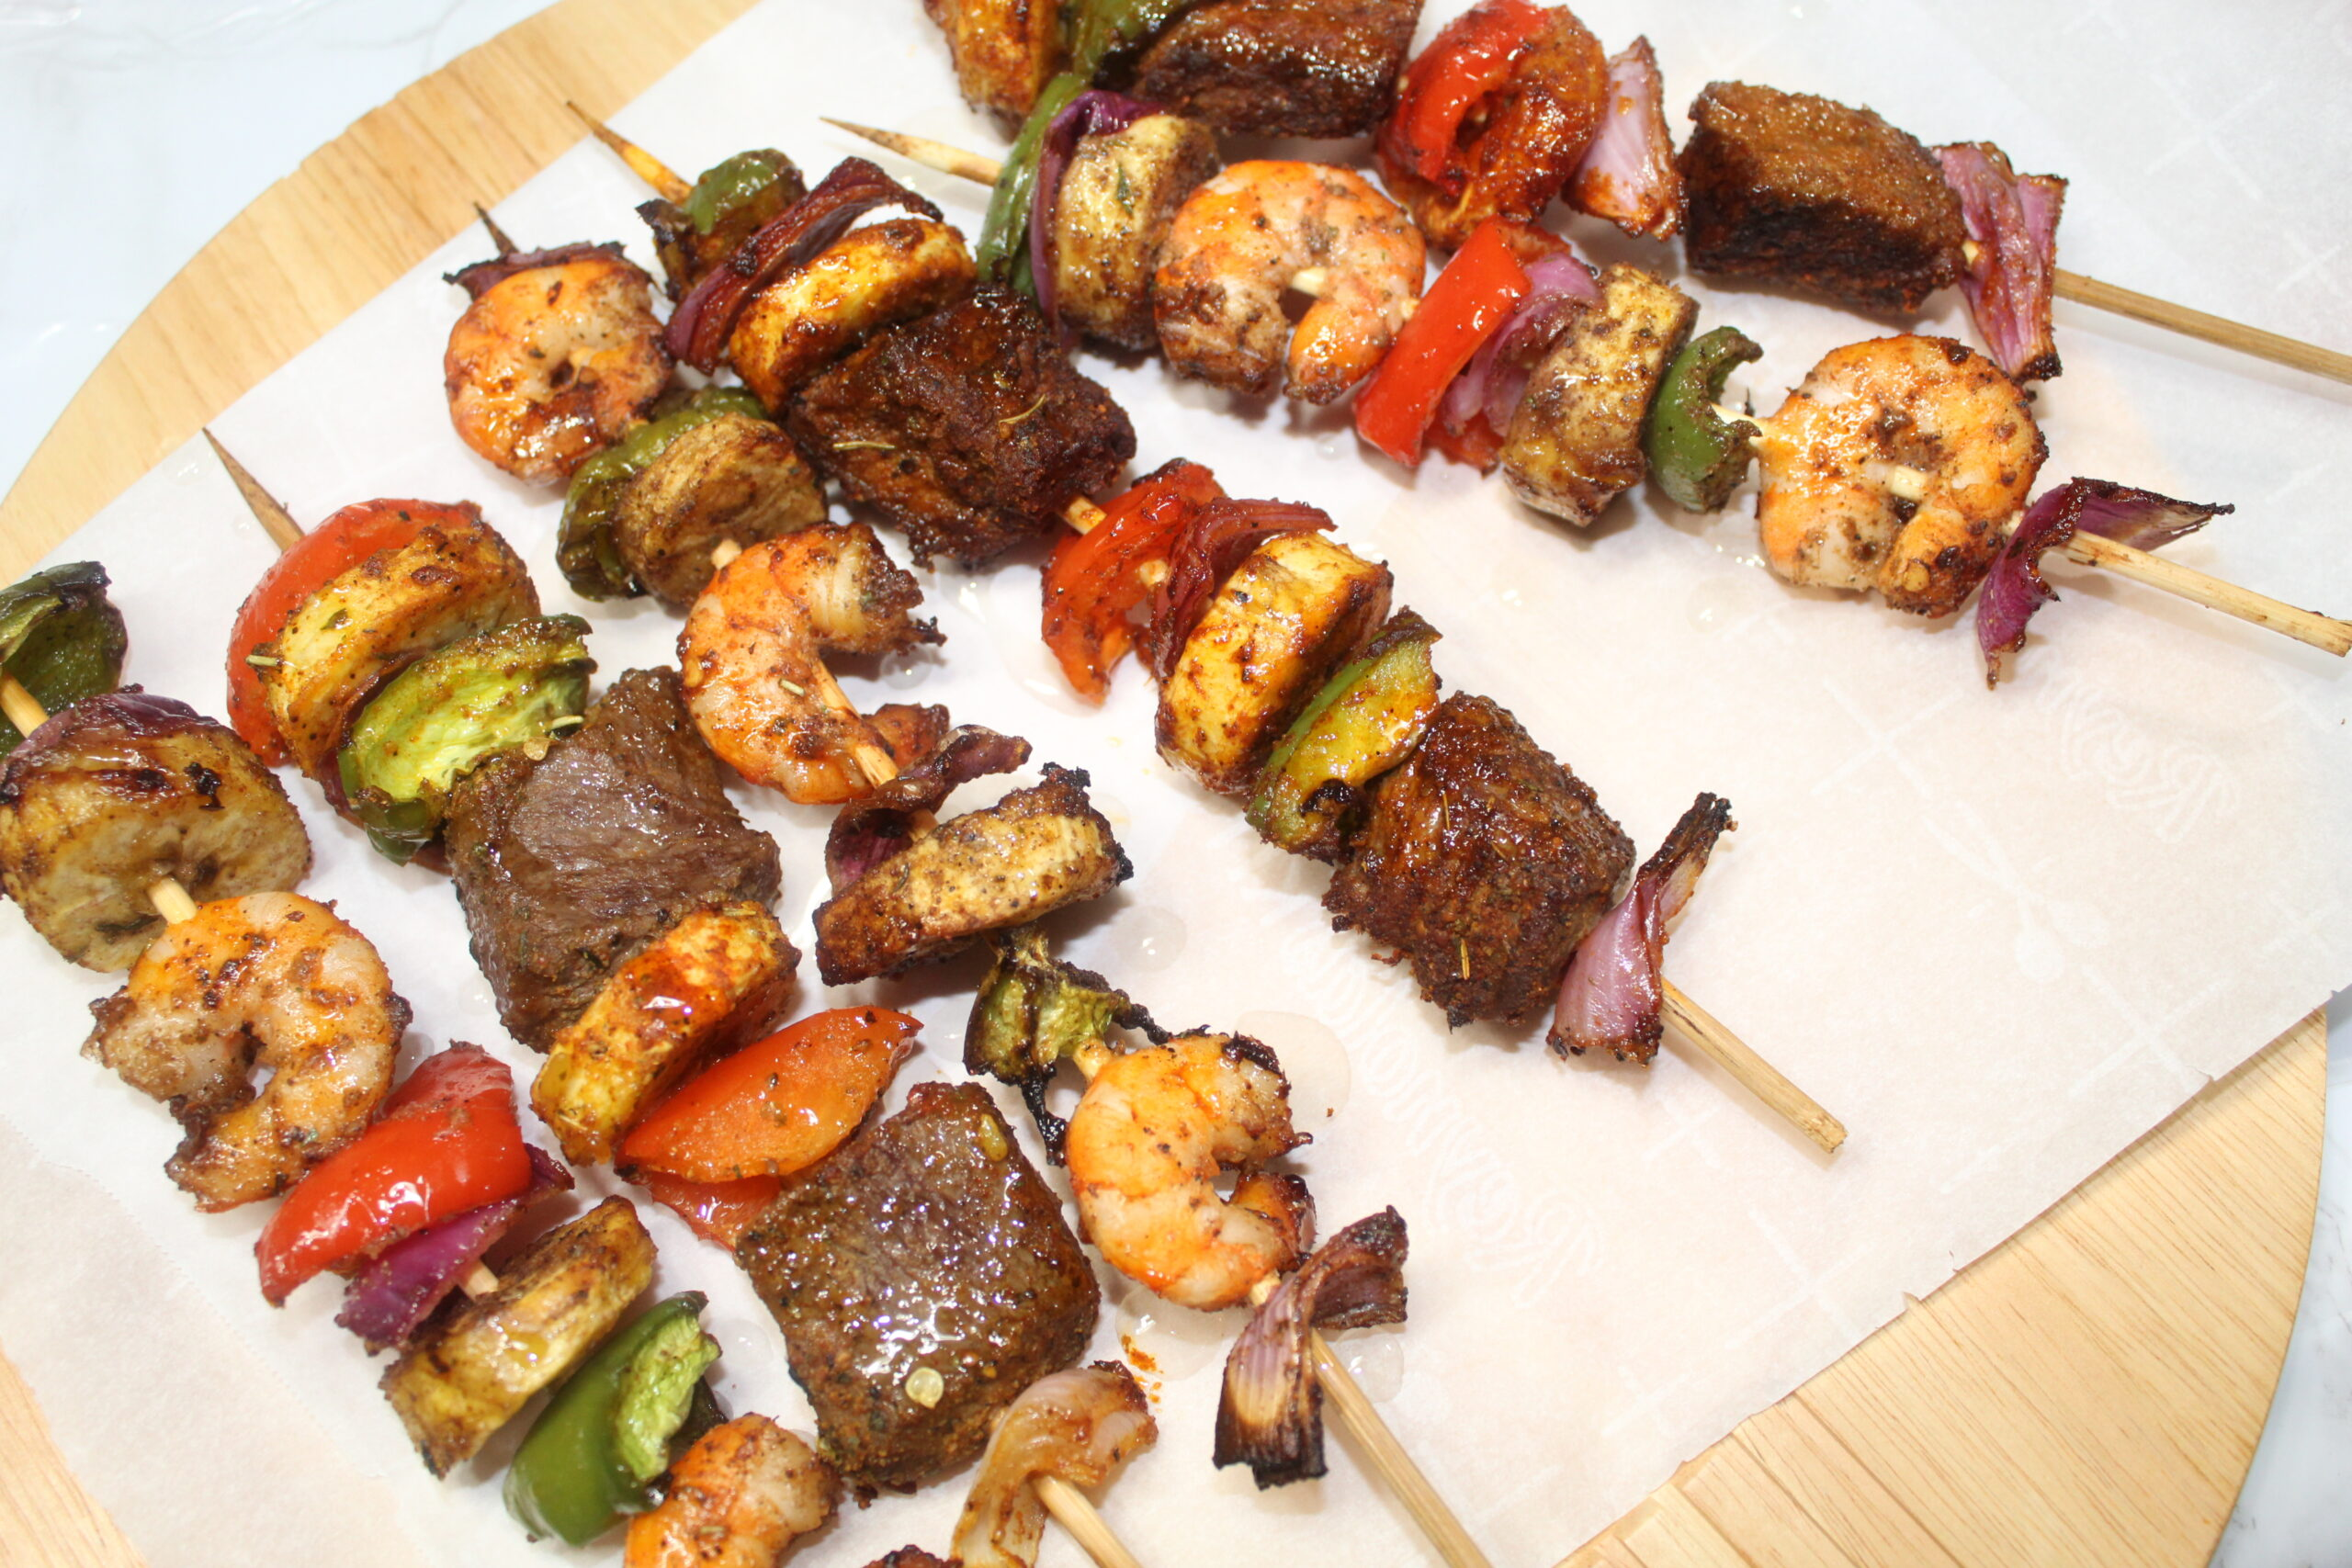 How to use Afromeals Suya (Kebab) spice!